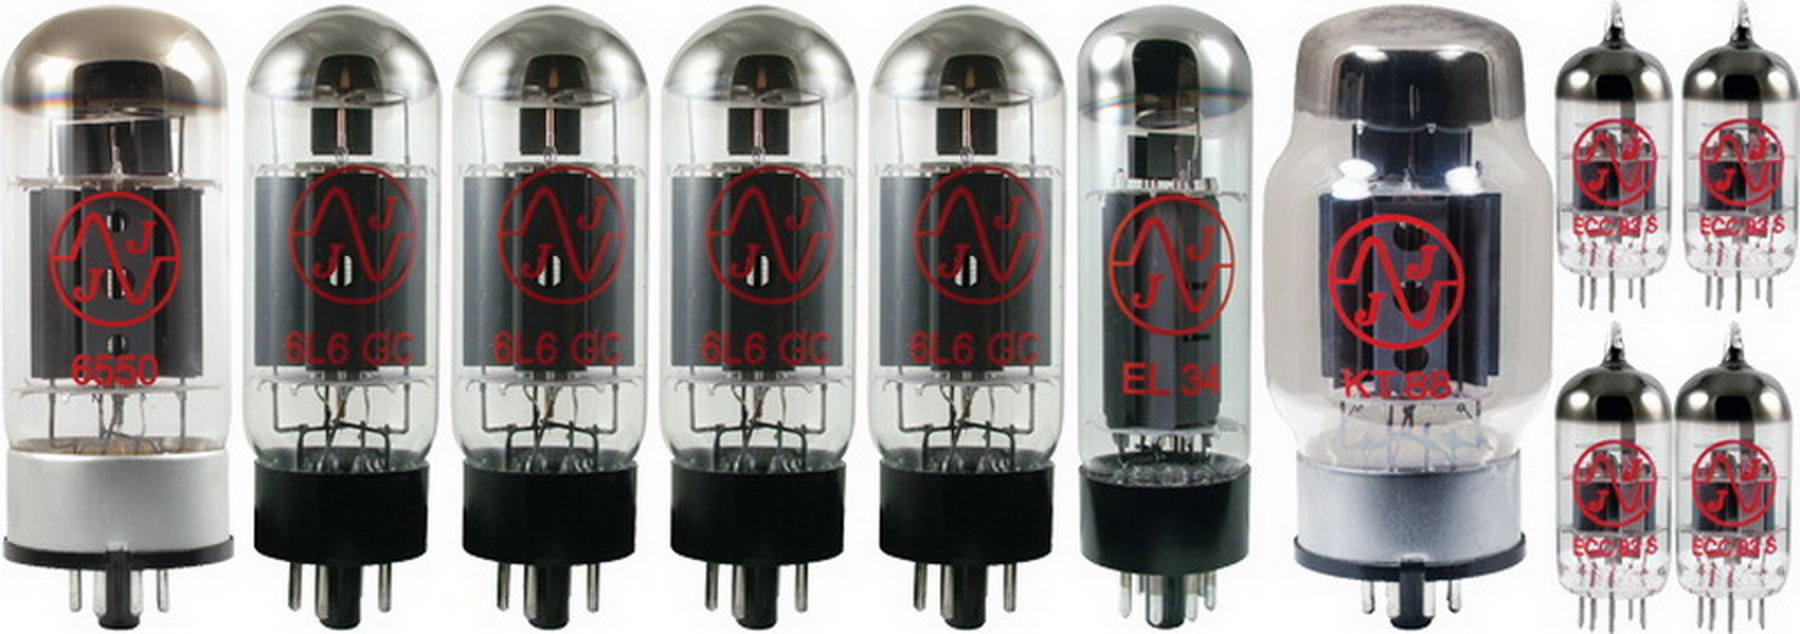 Click here to buy Tube Complement for Groove Tubes D-75 Dual amp.